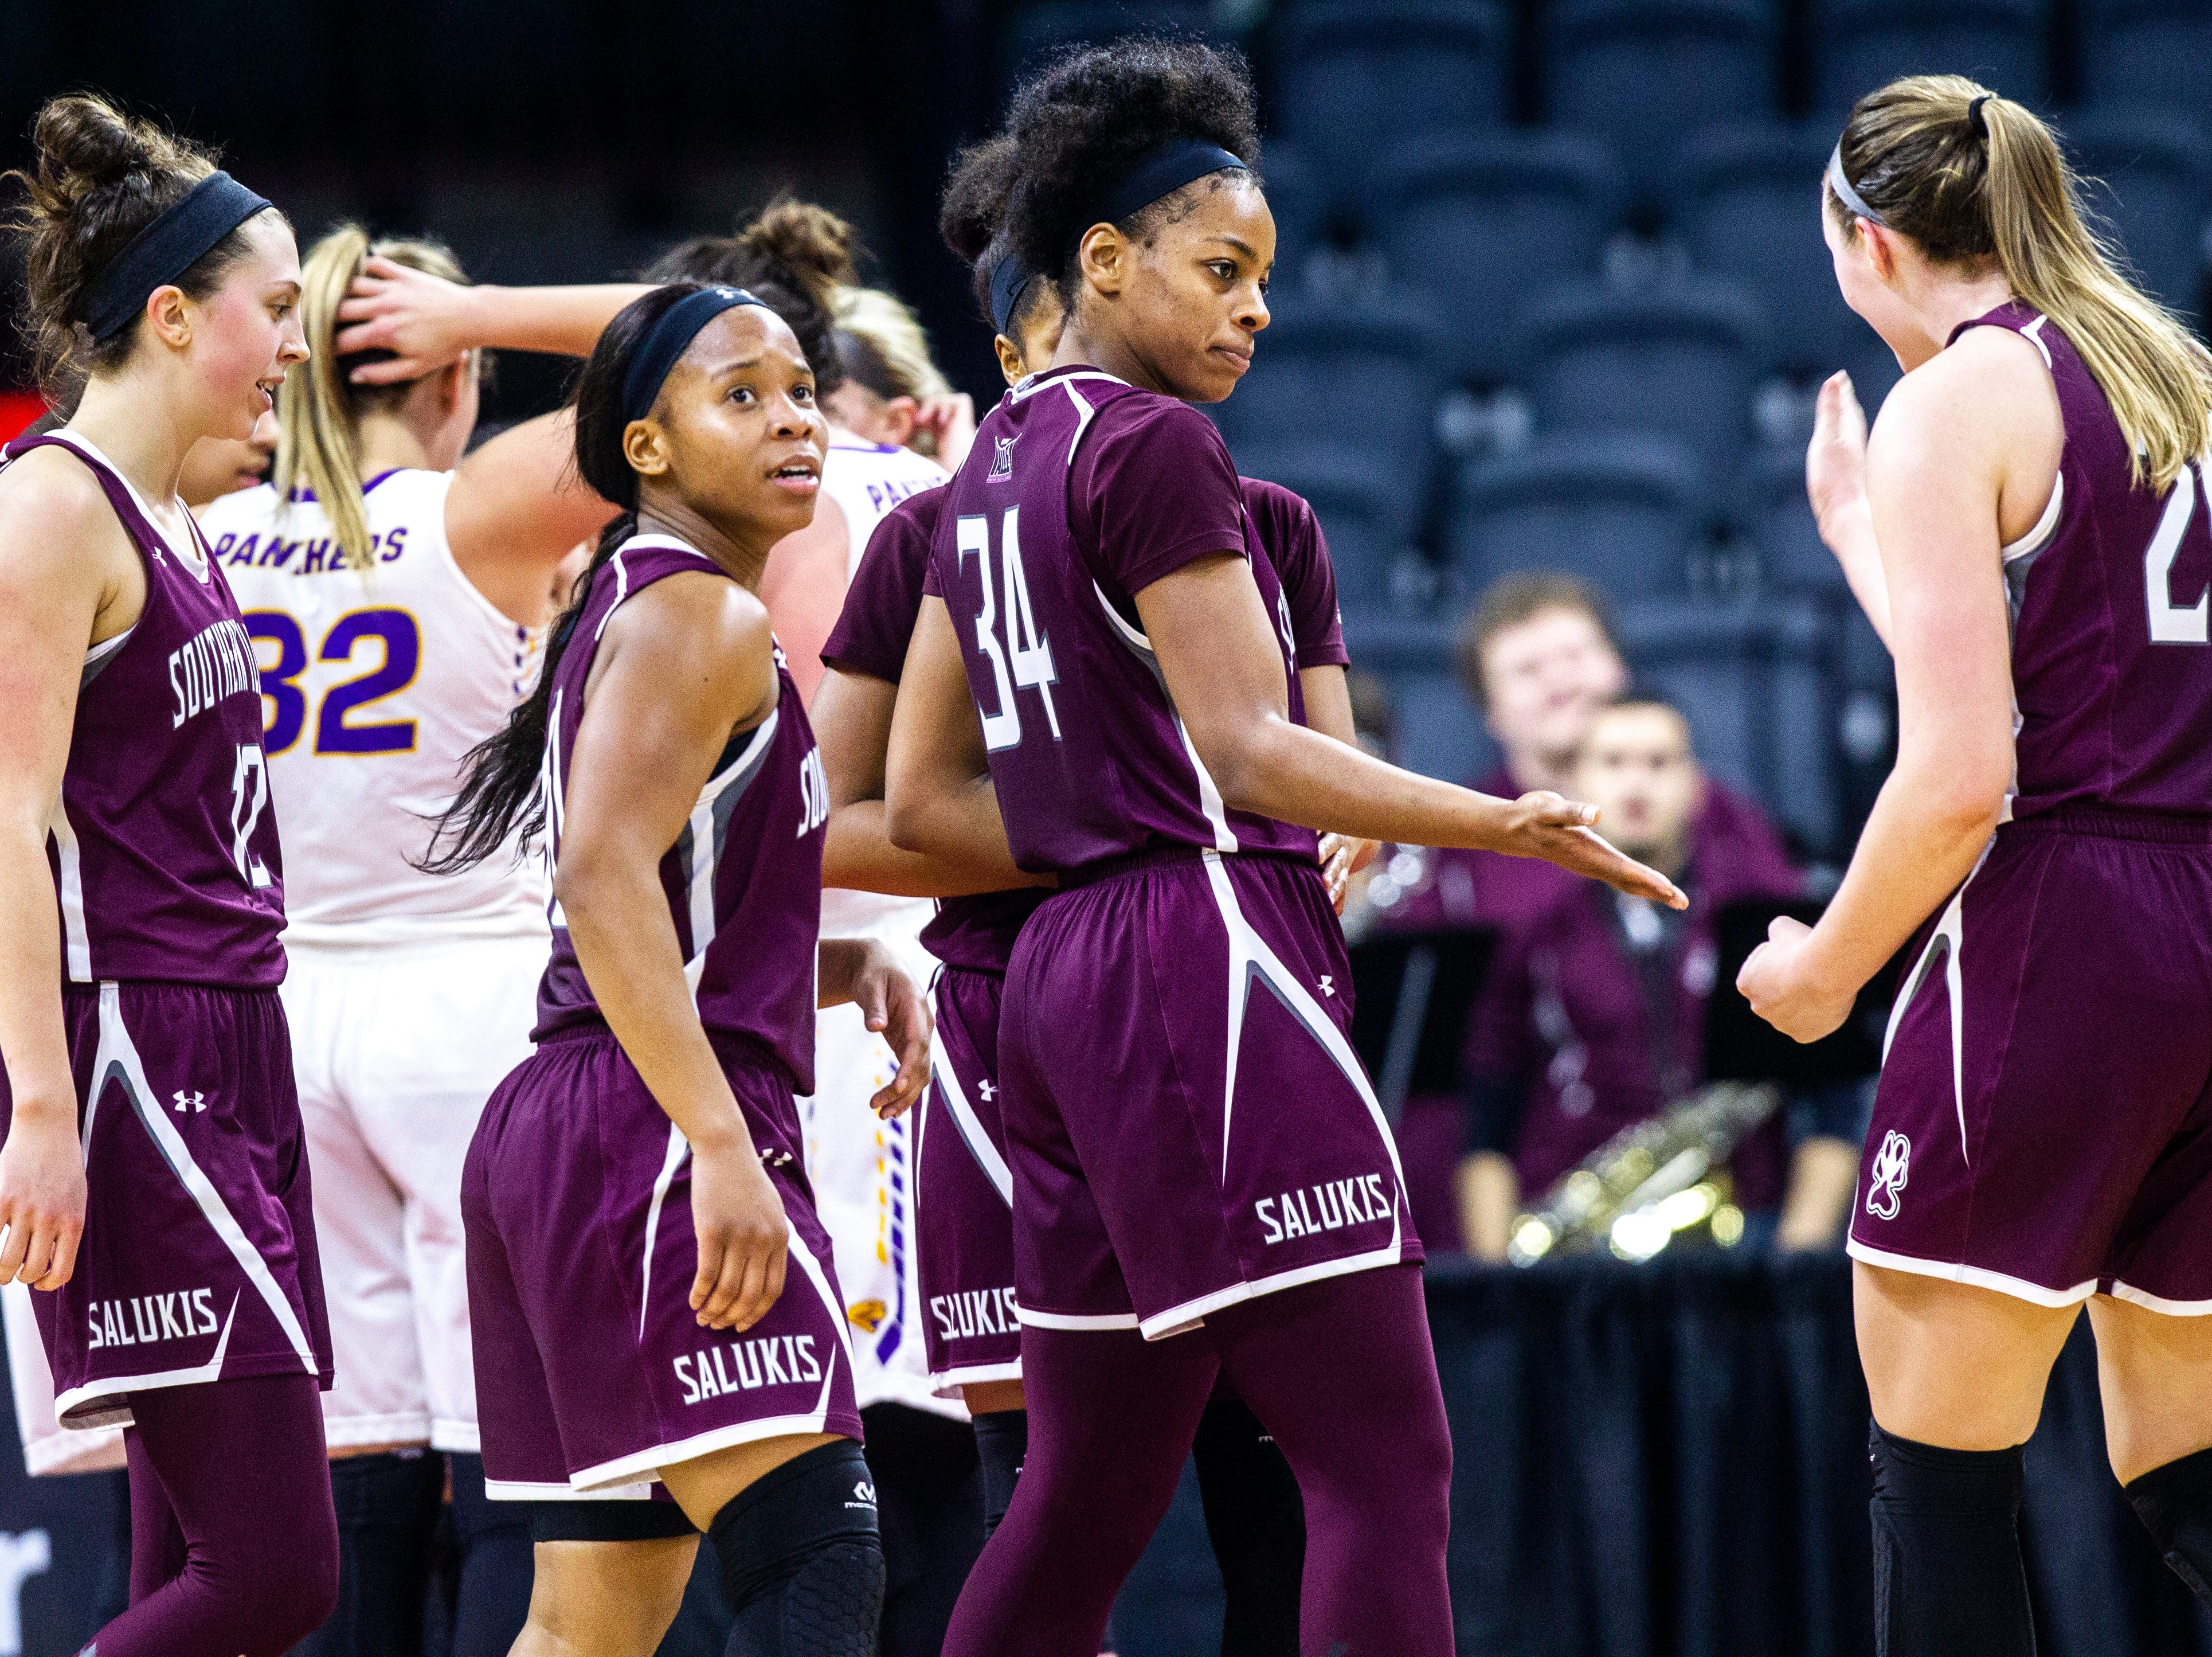 Southern Illinois forward Nicole Martin (34) goes for a high-five from Southern Illinois forward Abby Brockmeyer (25) during a NCAA Missouri Valley Conference women's basketball quarterfinal tournament game, Friday, March 15, 2019, at the TaxSlayer Center in Moline, Illinois.